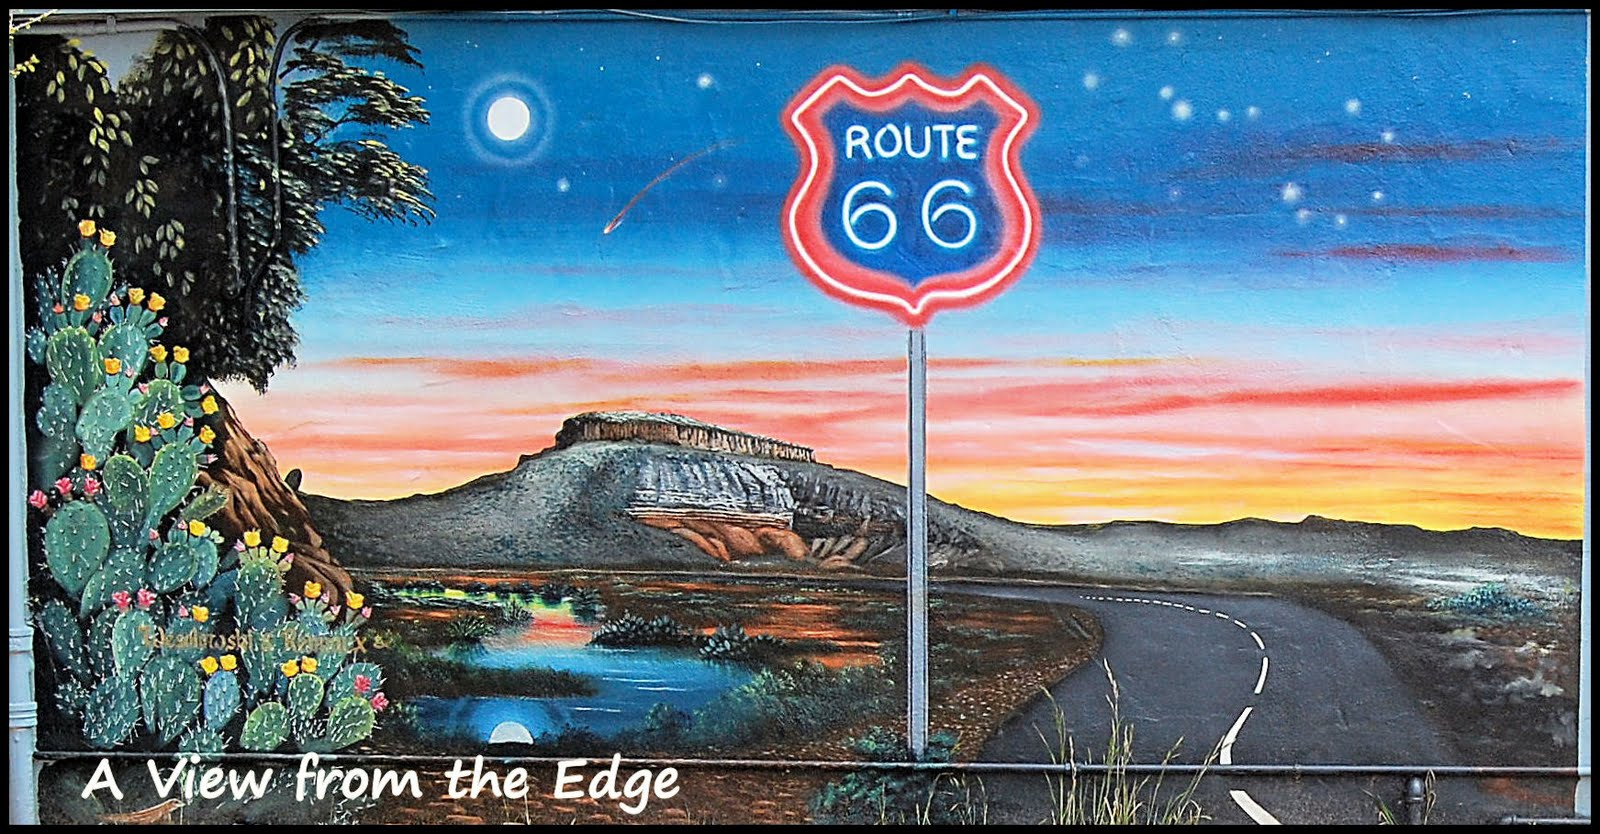 A view from the edge flashback friday tucumcari nm for Route 66 mural